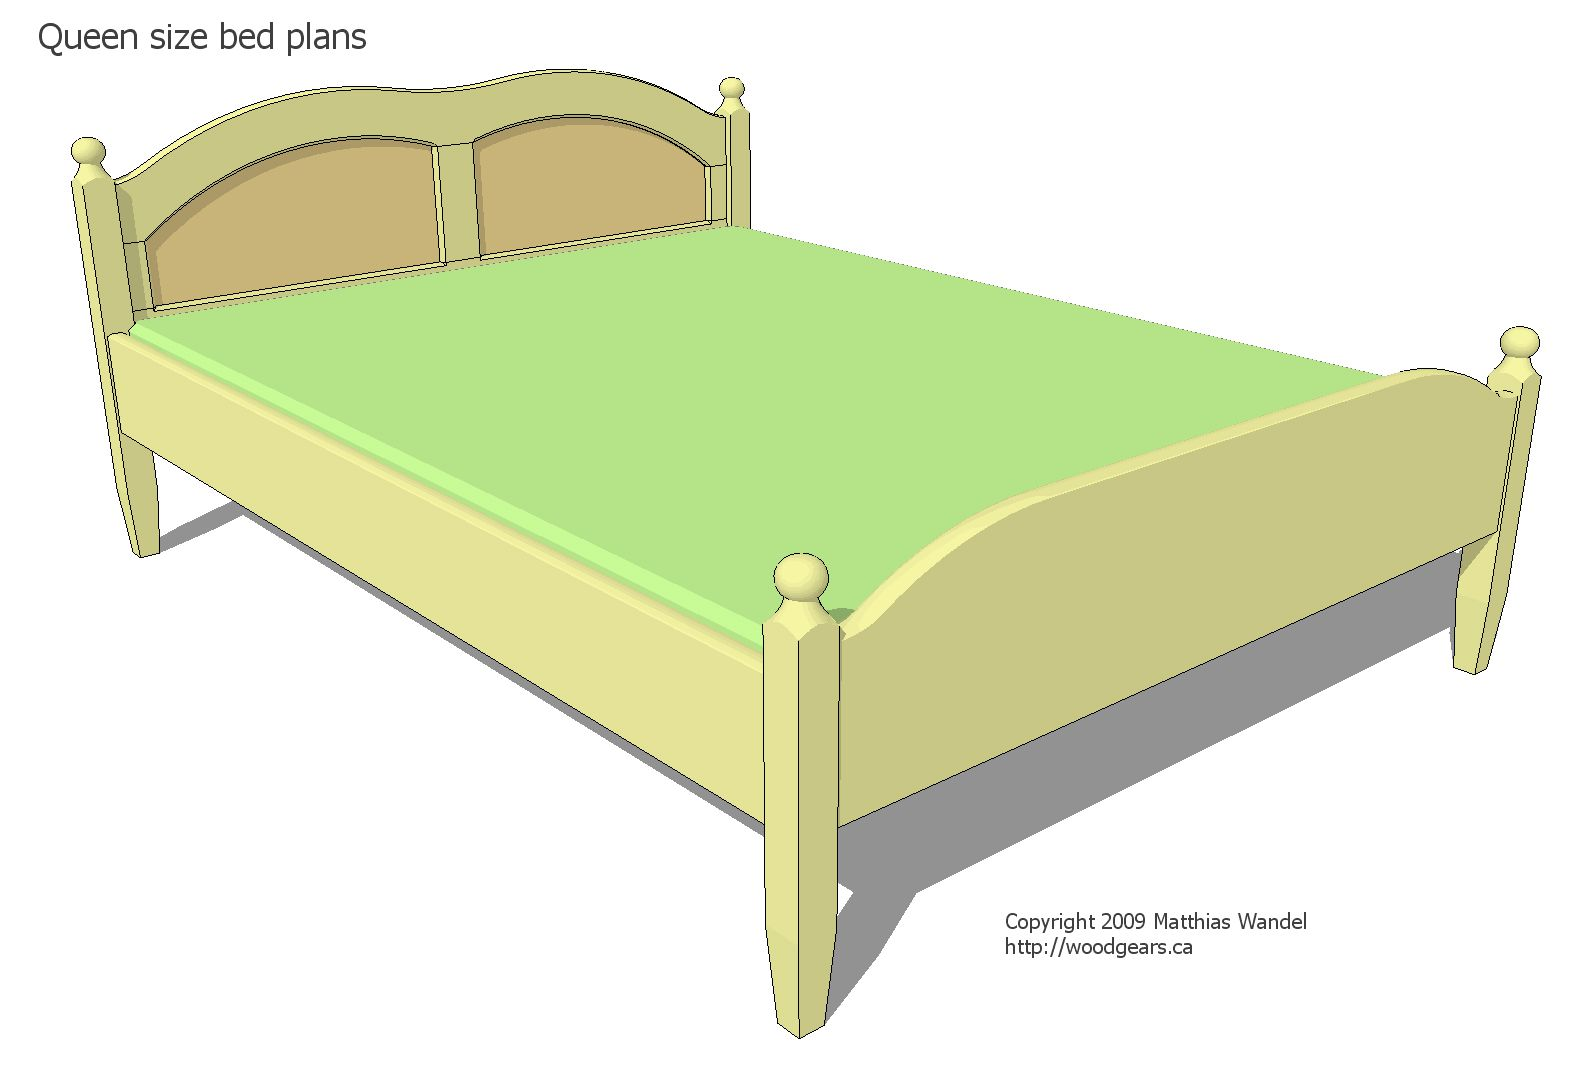 17 Free Diy Bed Plans For Adults And Children